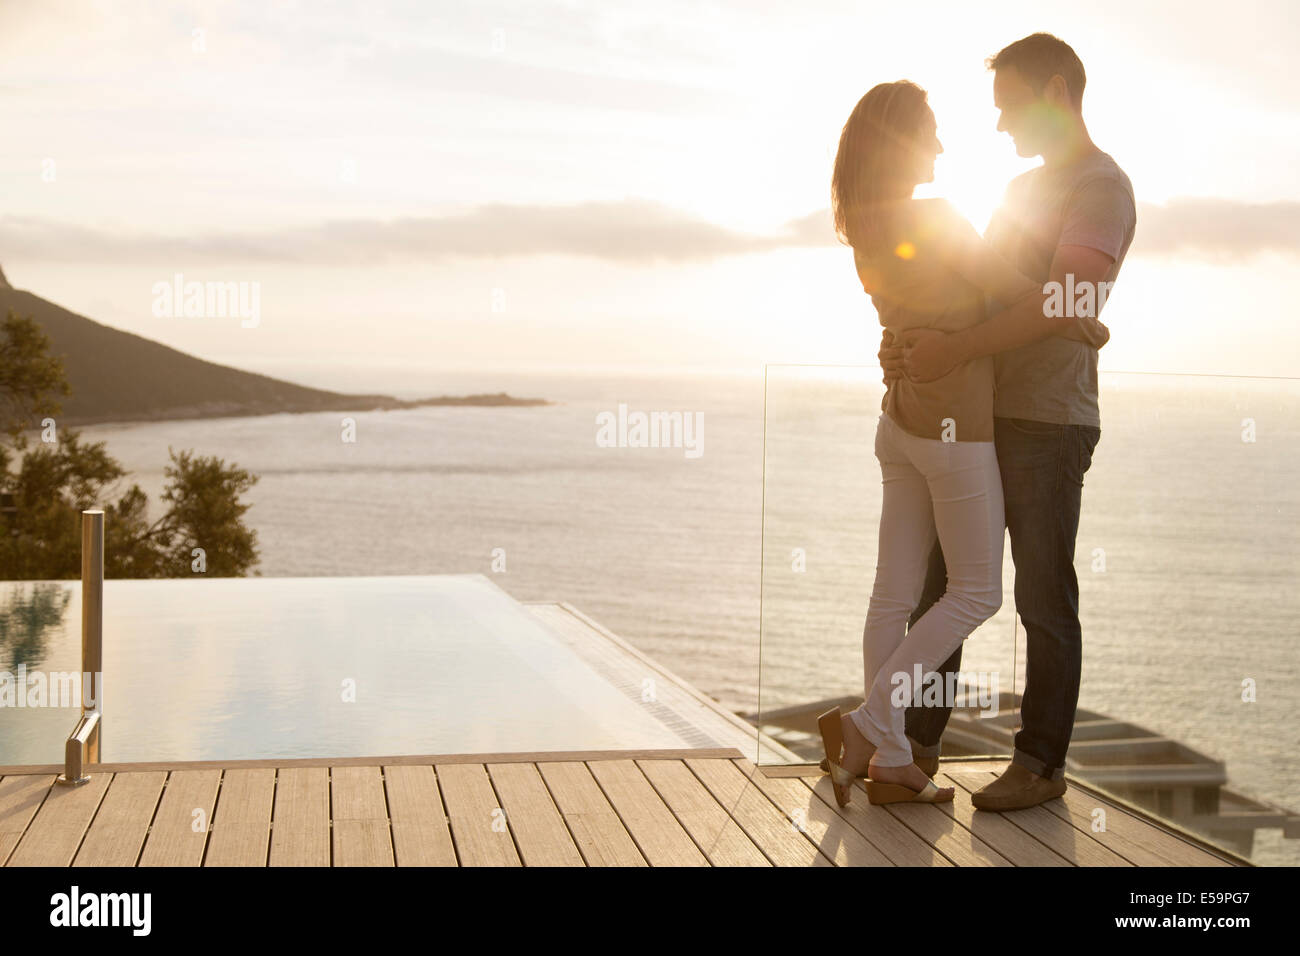 Couple on wooden deck overlooking ocean - Stock Image